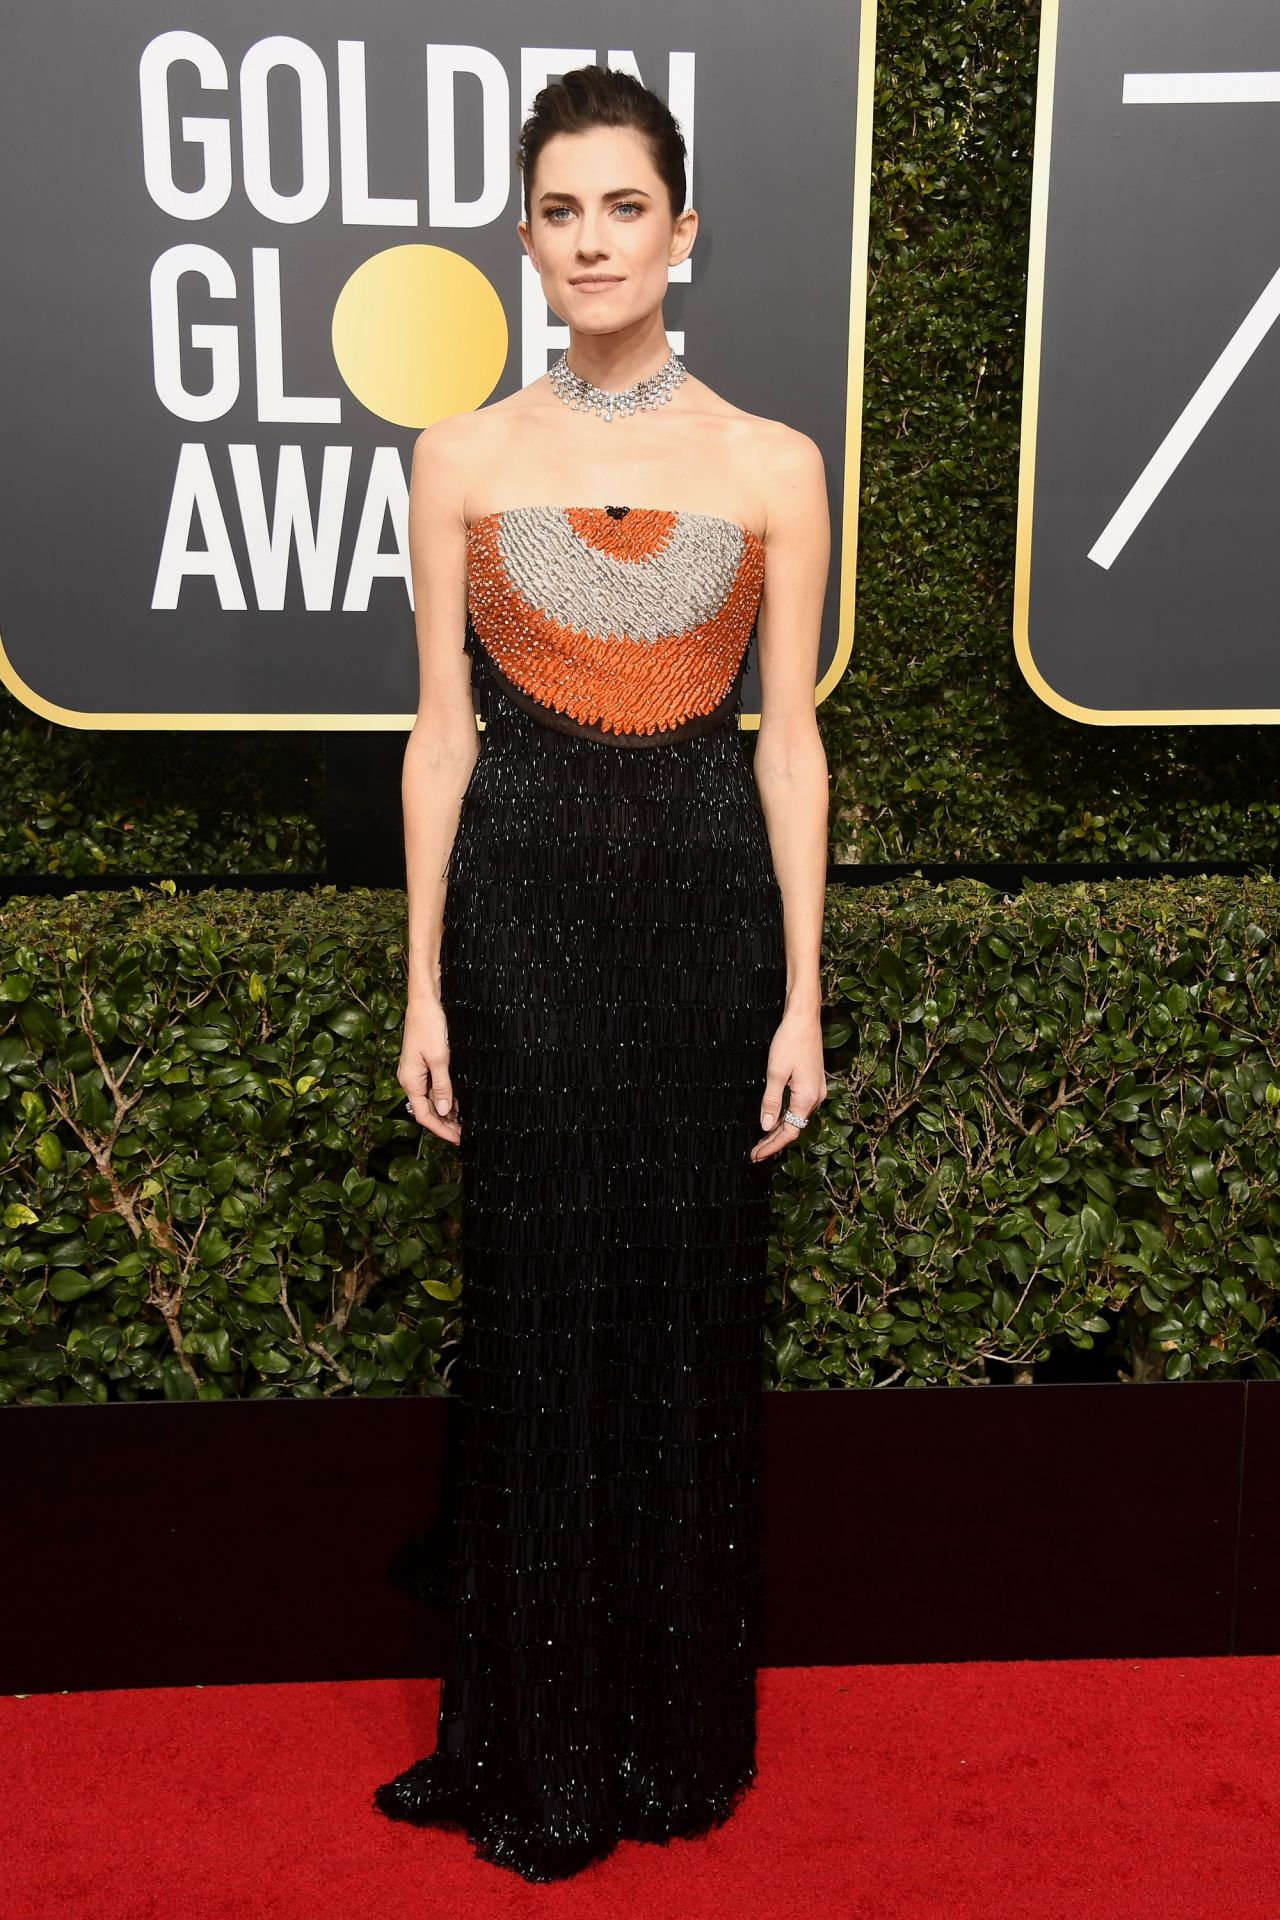 http://celebmafia.com/wp-content/uploads/2018/01/allison-williams-golden-globe-awards-2018-in-beverly-hill-9.jpg